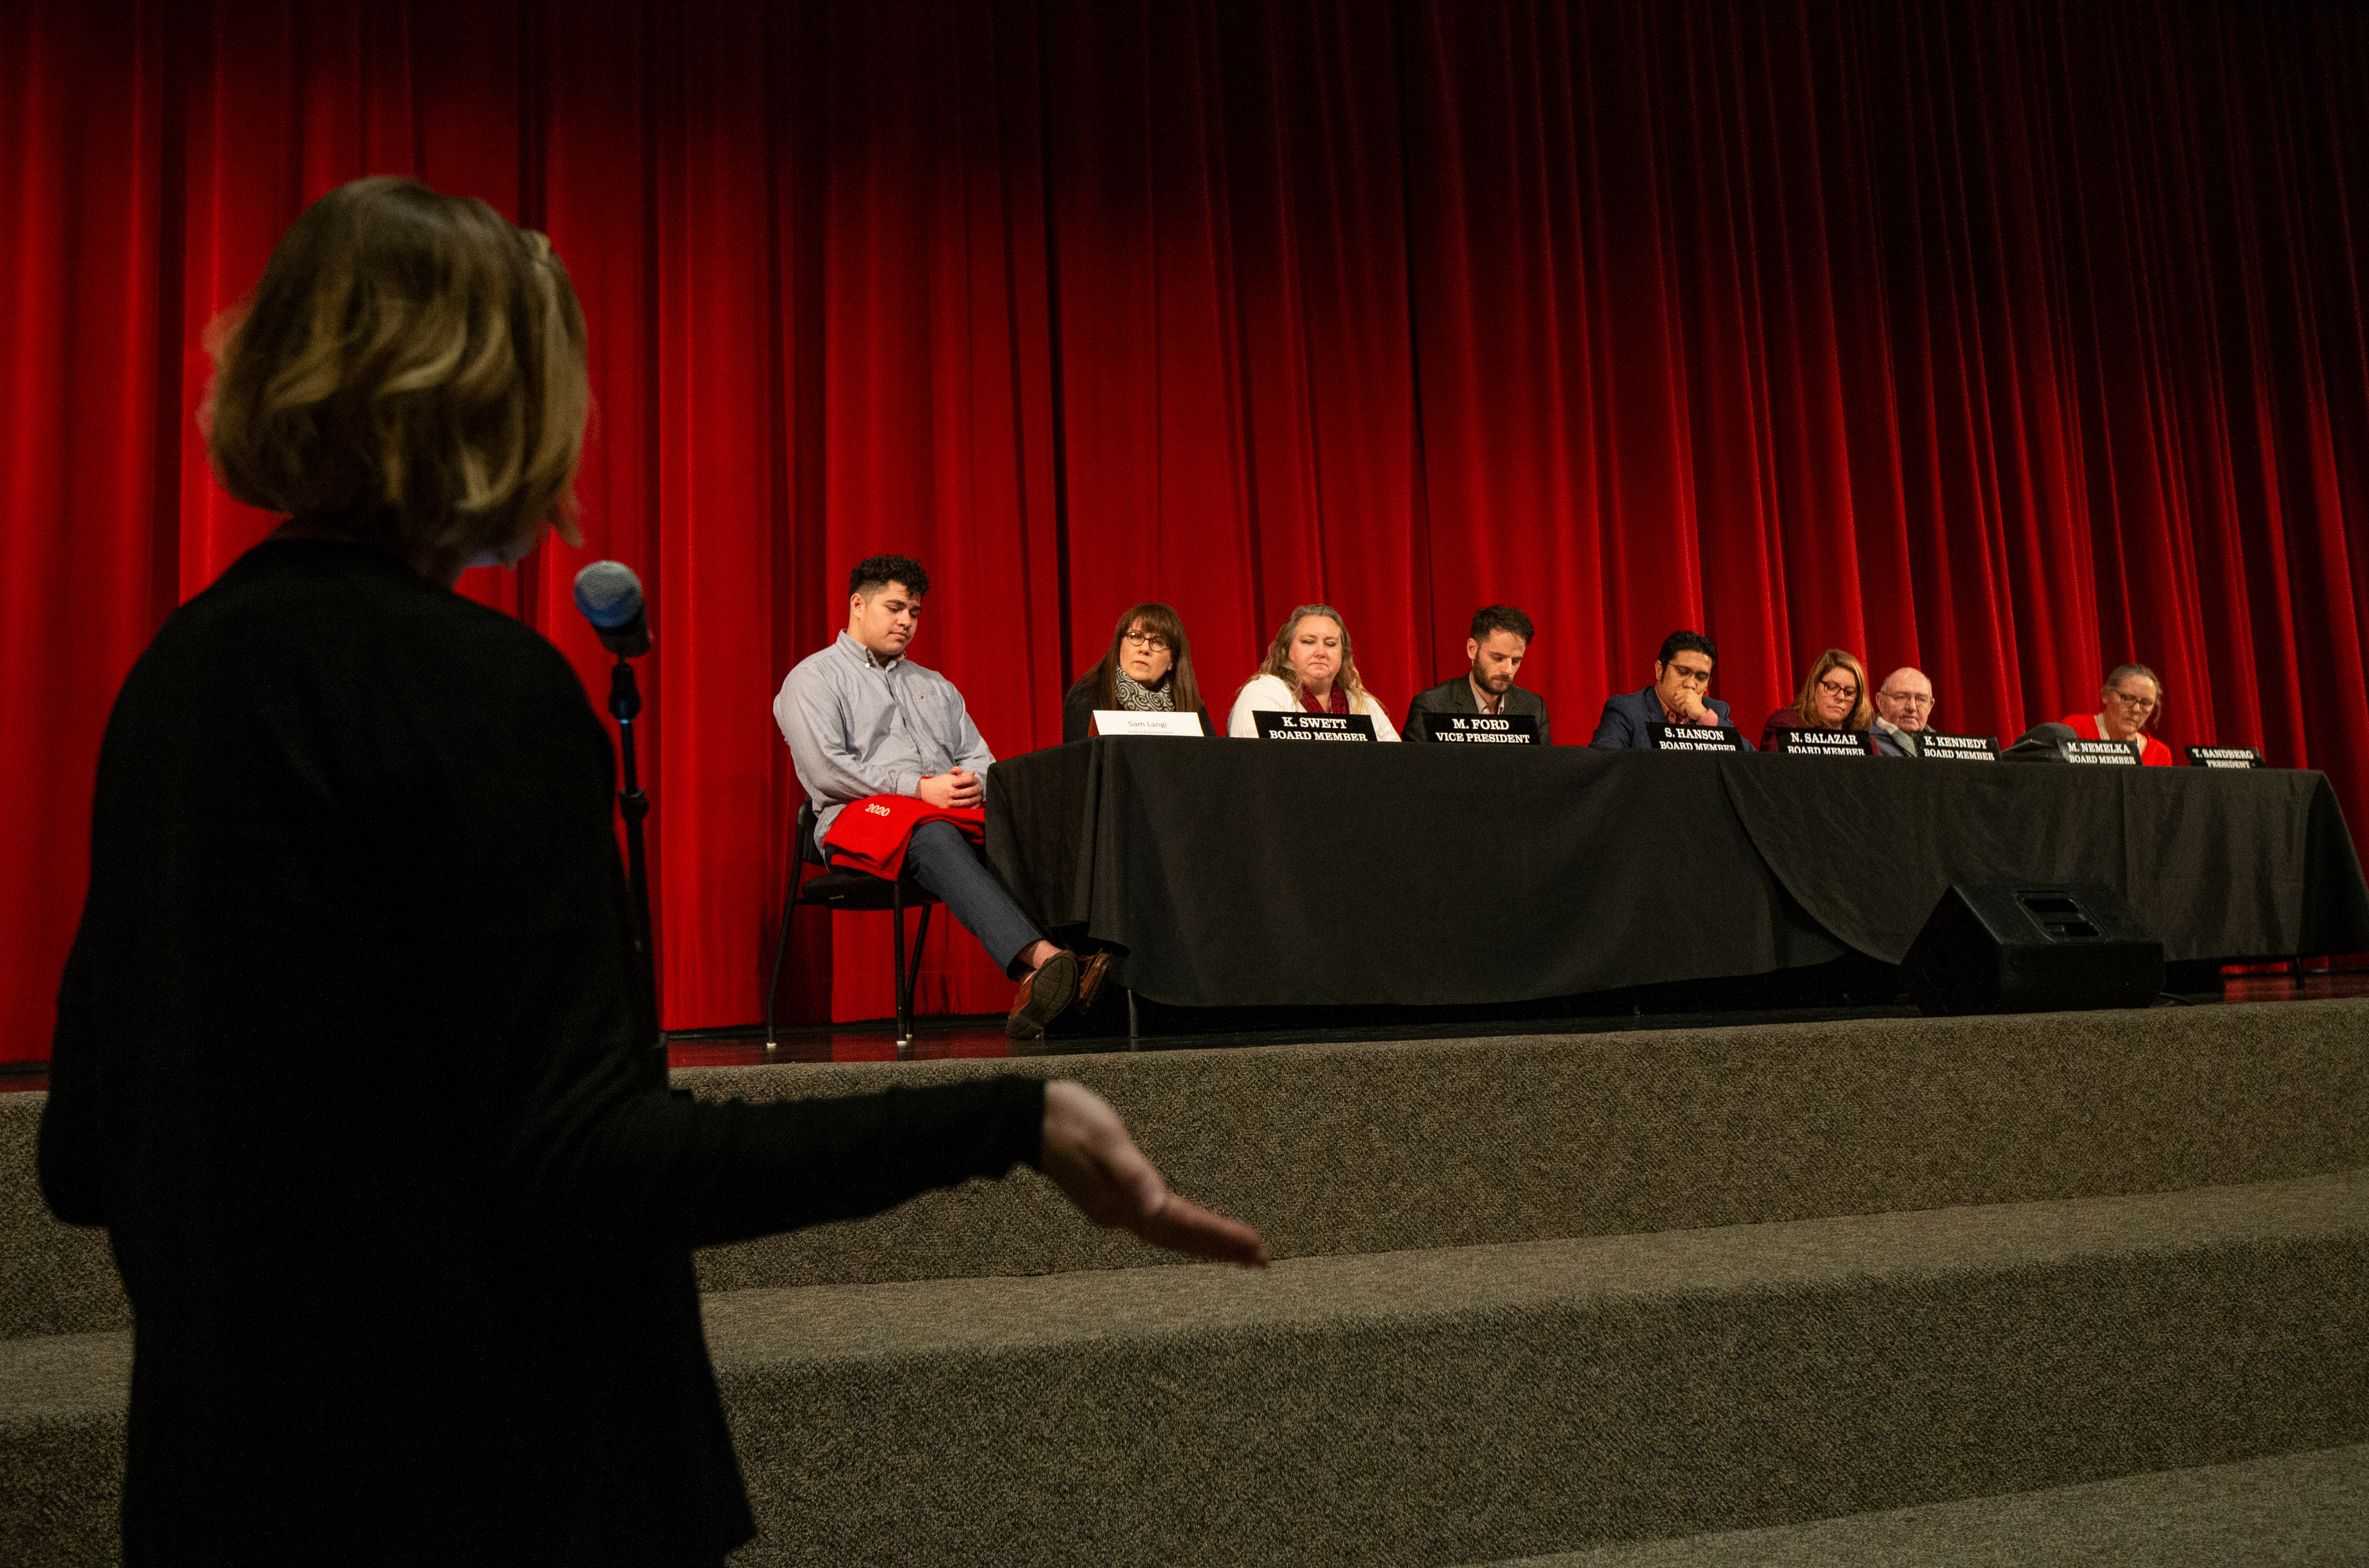 Amanda Longfellow, a parent in the Salt Lake City School District, discusses her concerns about a later start time for high schools during a school board meeting at Northwest Middle School in Salt Lake City on Thursday, Jan. 16, 2020.